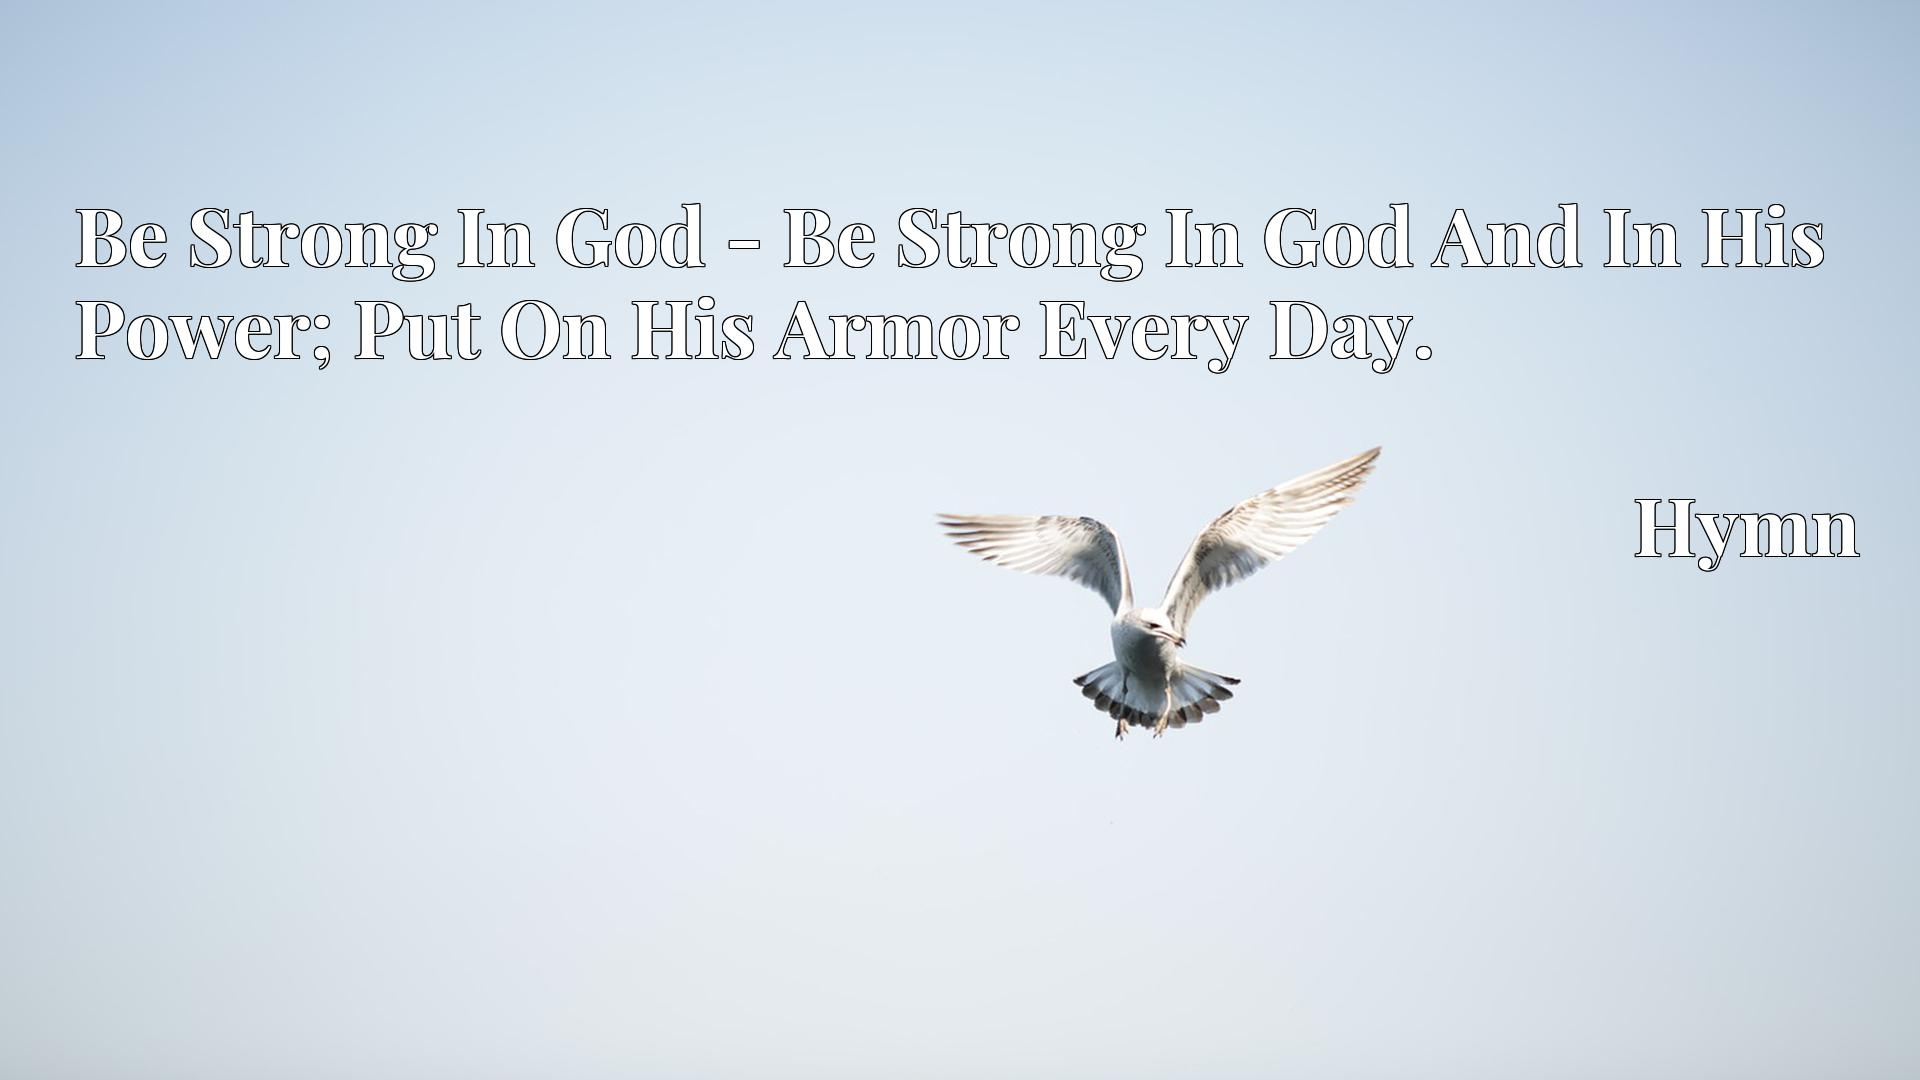 Be Strong In God - Be Strong In God And In His Power; Put On His Armor Every Day. - Hymn